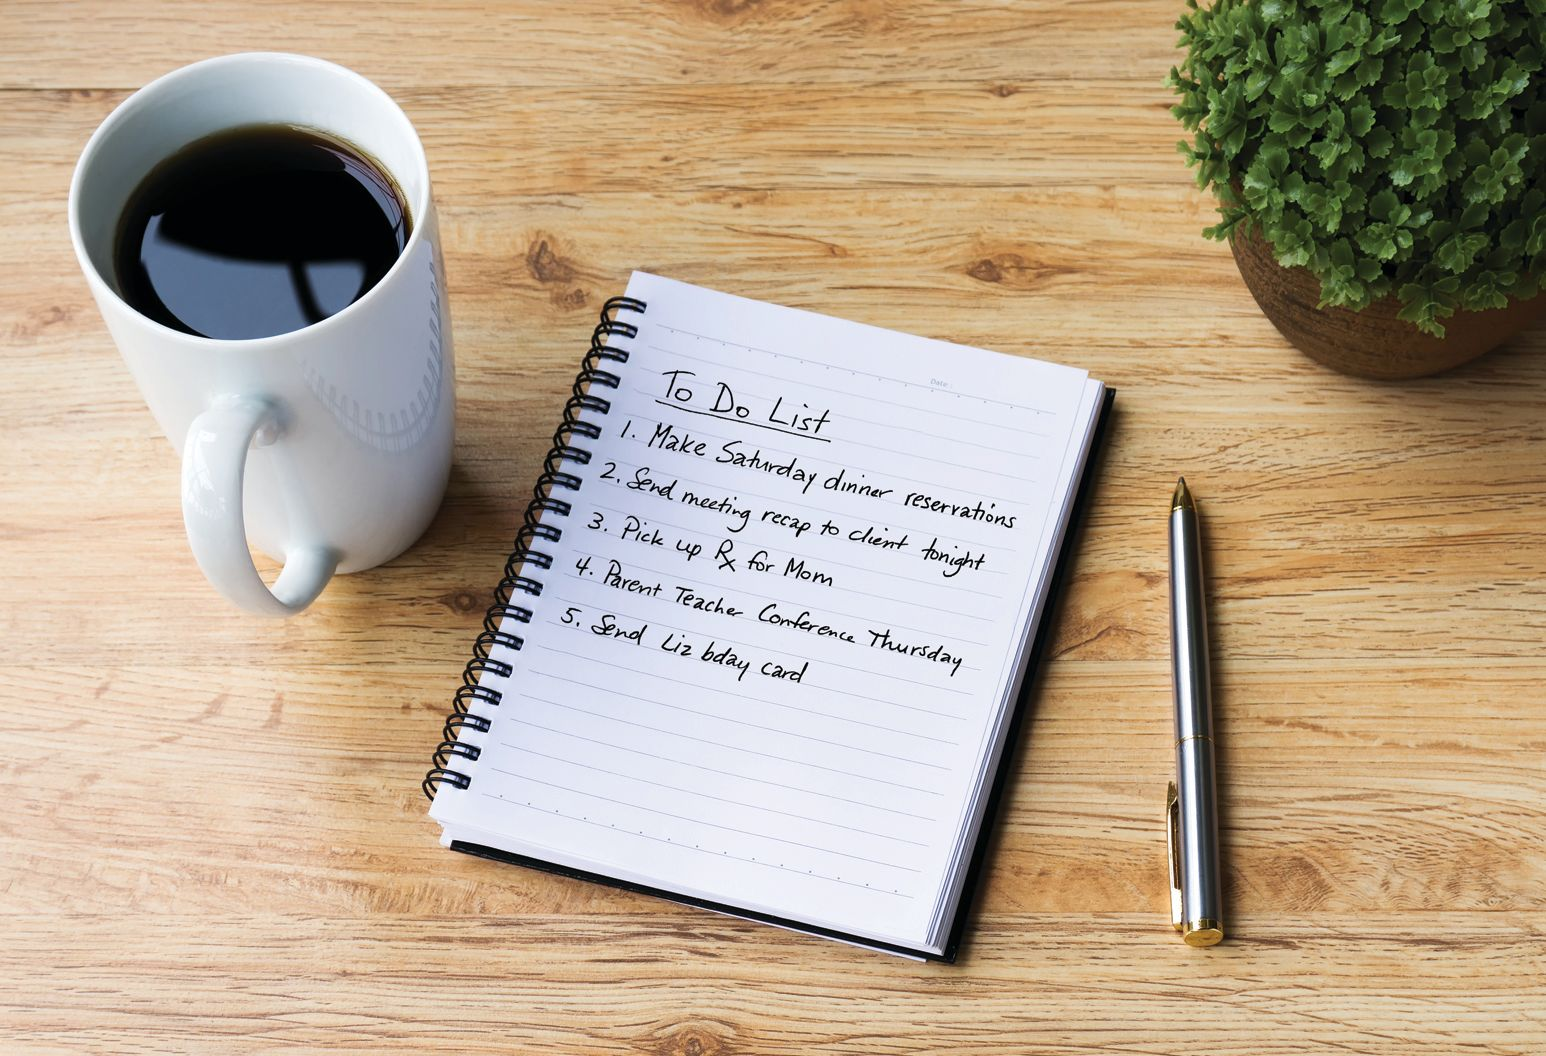 "White mug is filled with coffee on a wooden table next to a small notebook that says ""To Do list"" followed by a list of 5 items that starts with ""Make Saturday dinner reservations"""